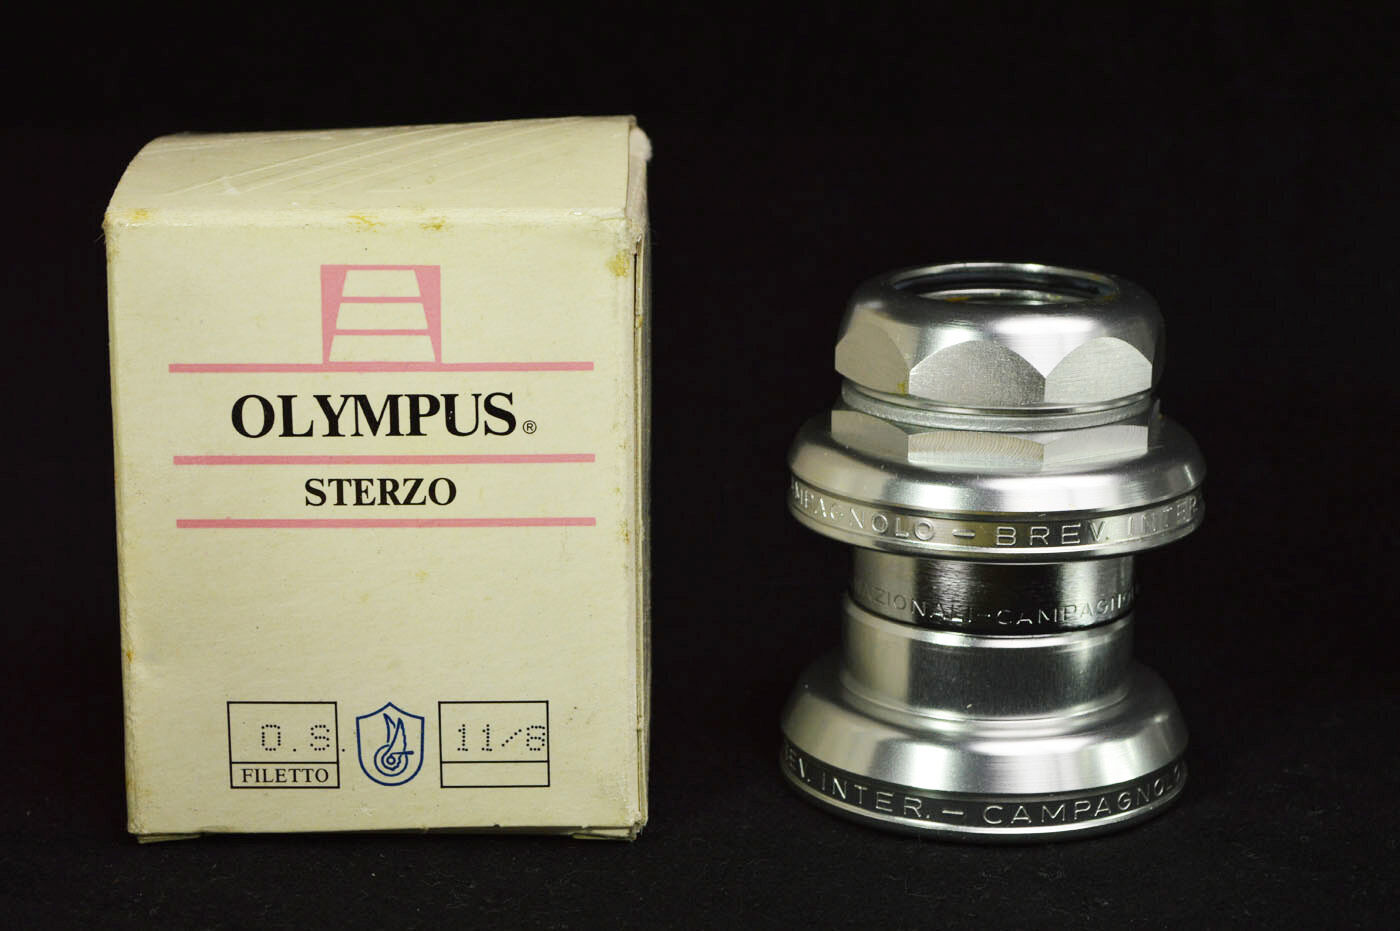 NOS Campagnolo Olympus New In Box sterzo 5 4 1 1 4  MTB rare vintage headset